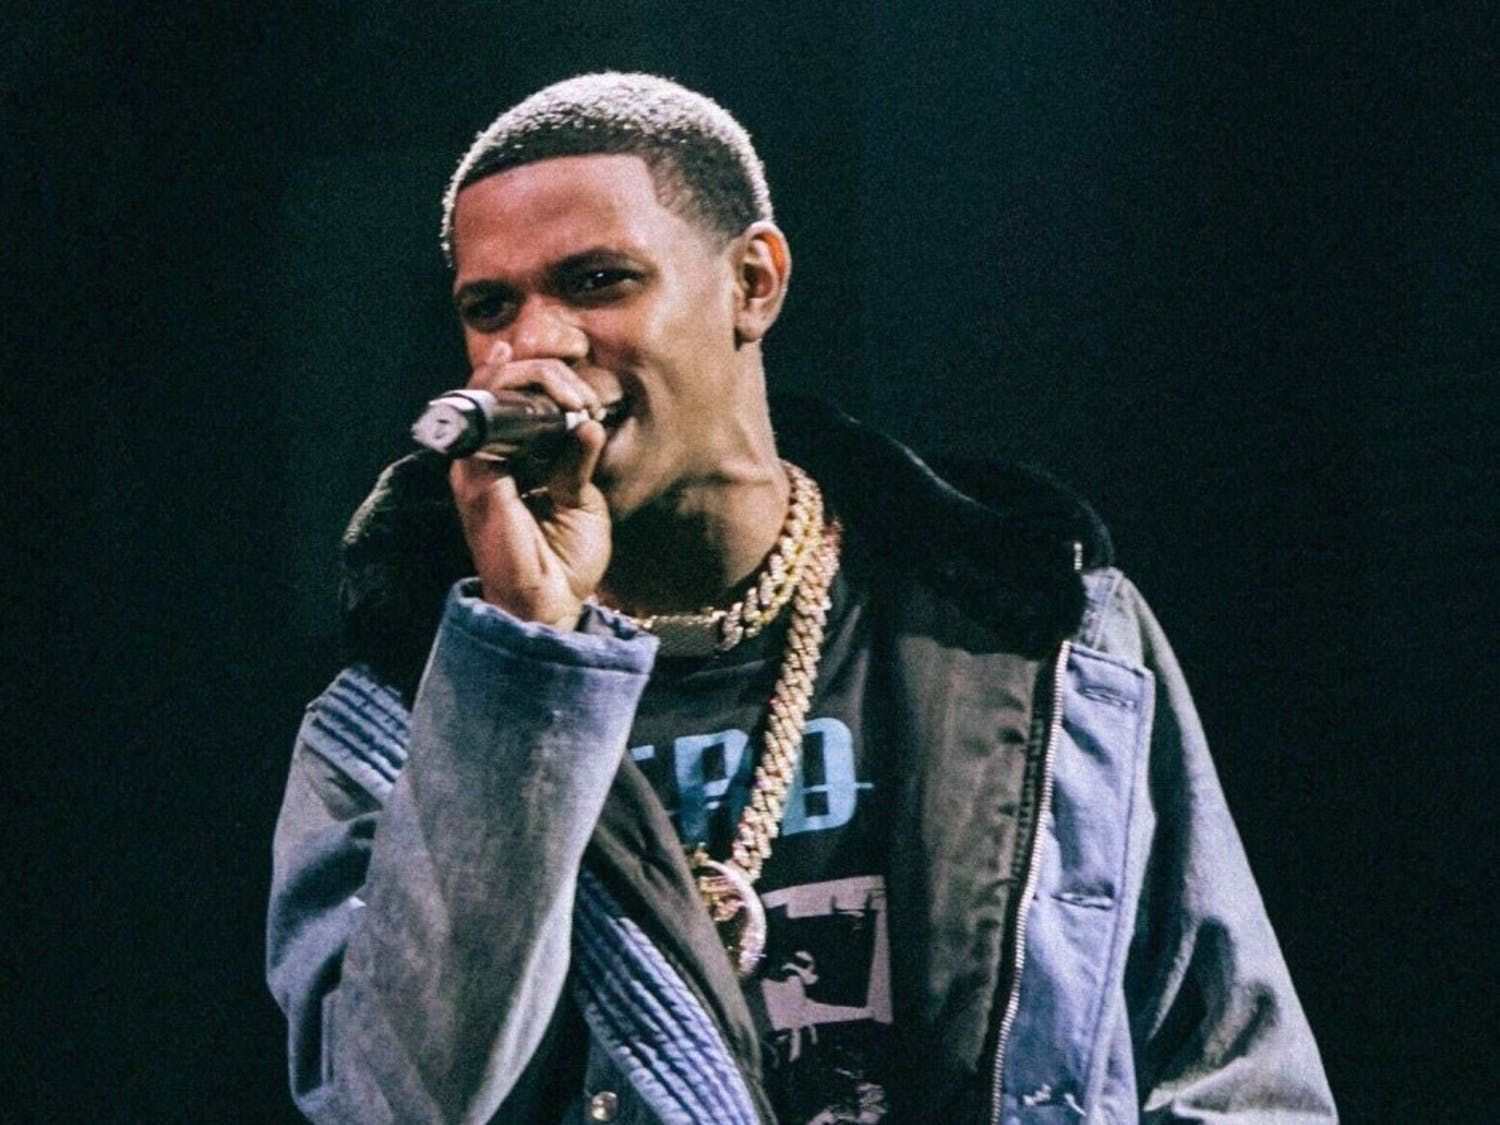 SA announced on Monday that rapper A Boogie Wit Da Hoodie will be a co-headliner at this year's Spring Fest.